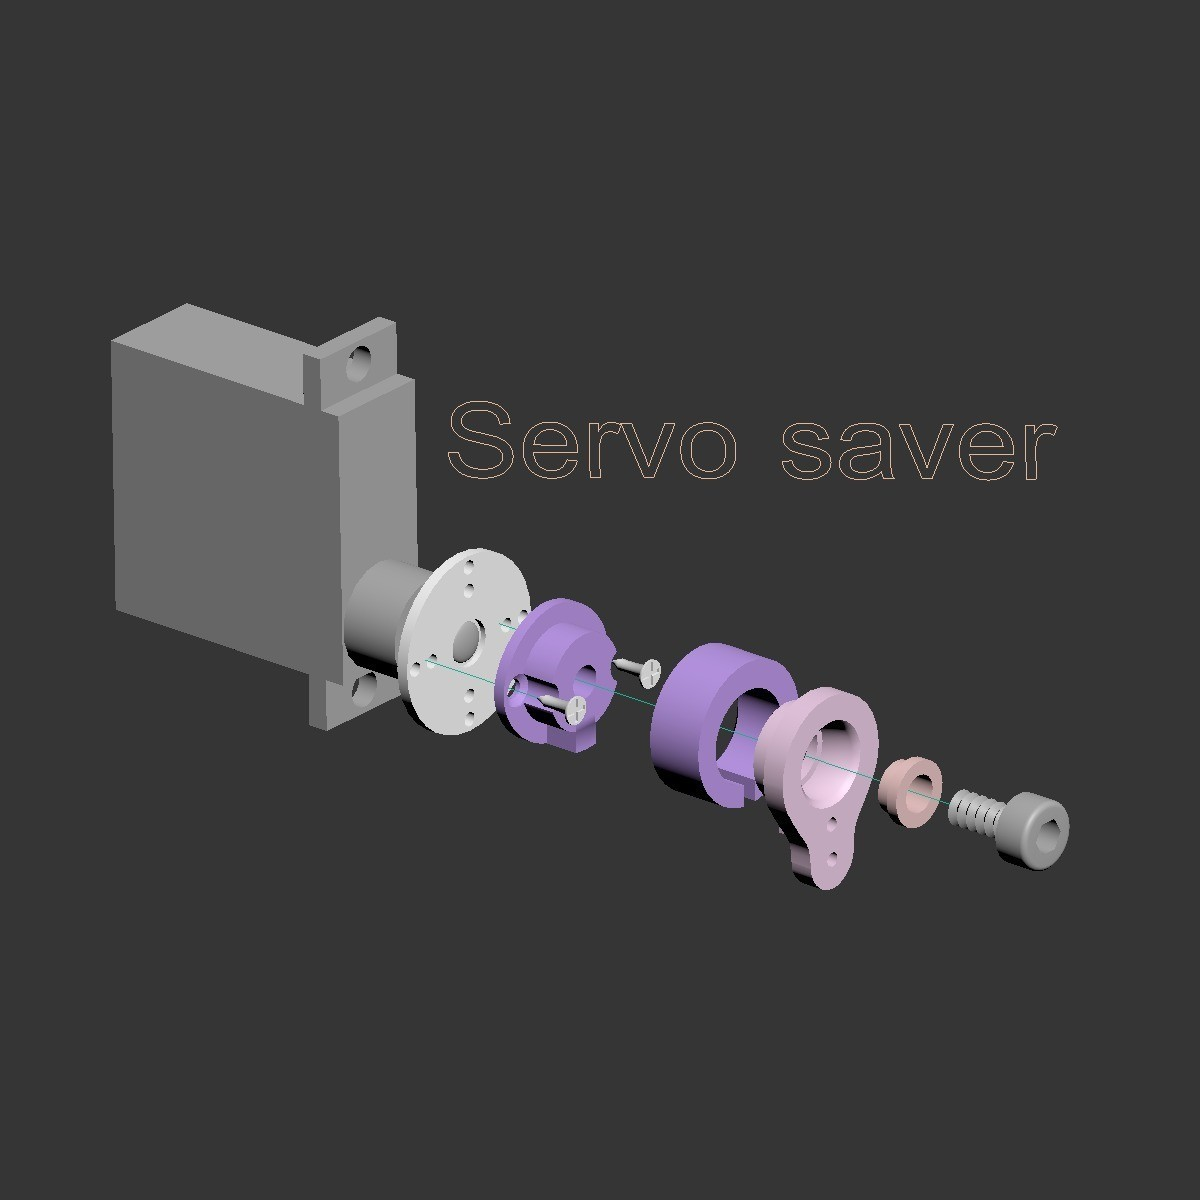 Servosaver01.jpg Download free STL file Fully printable Monster Truck • 3D printer design, tahustvedt